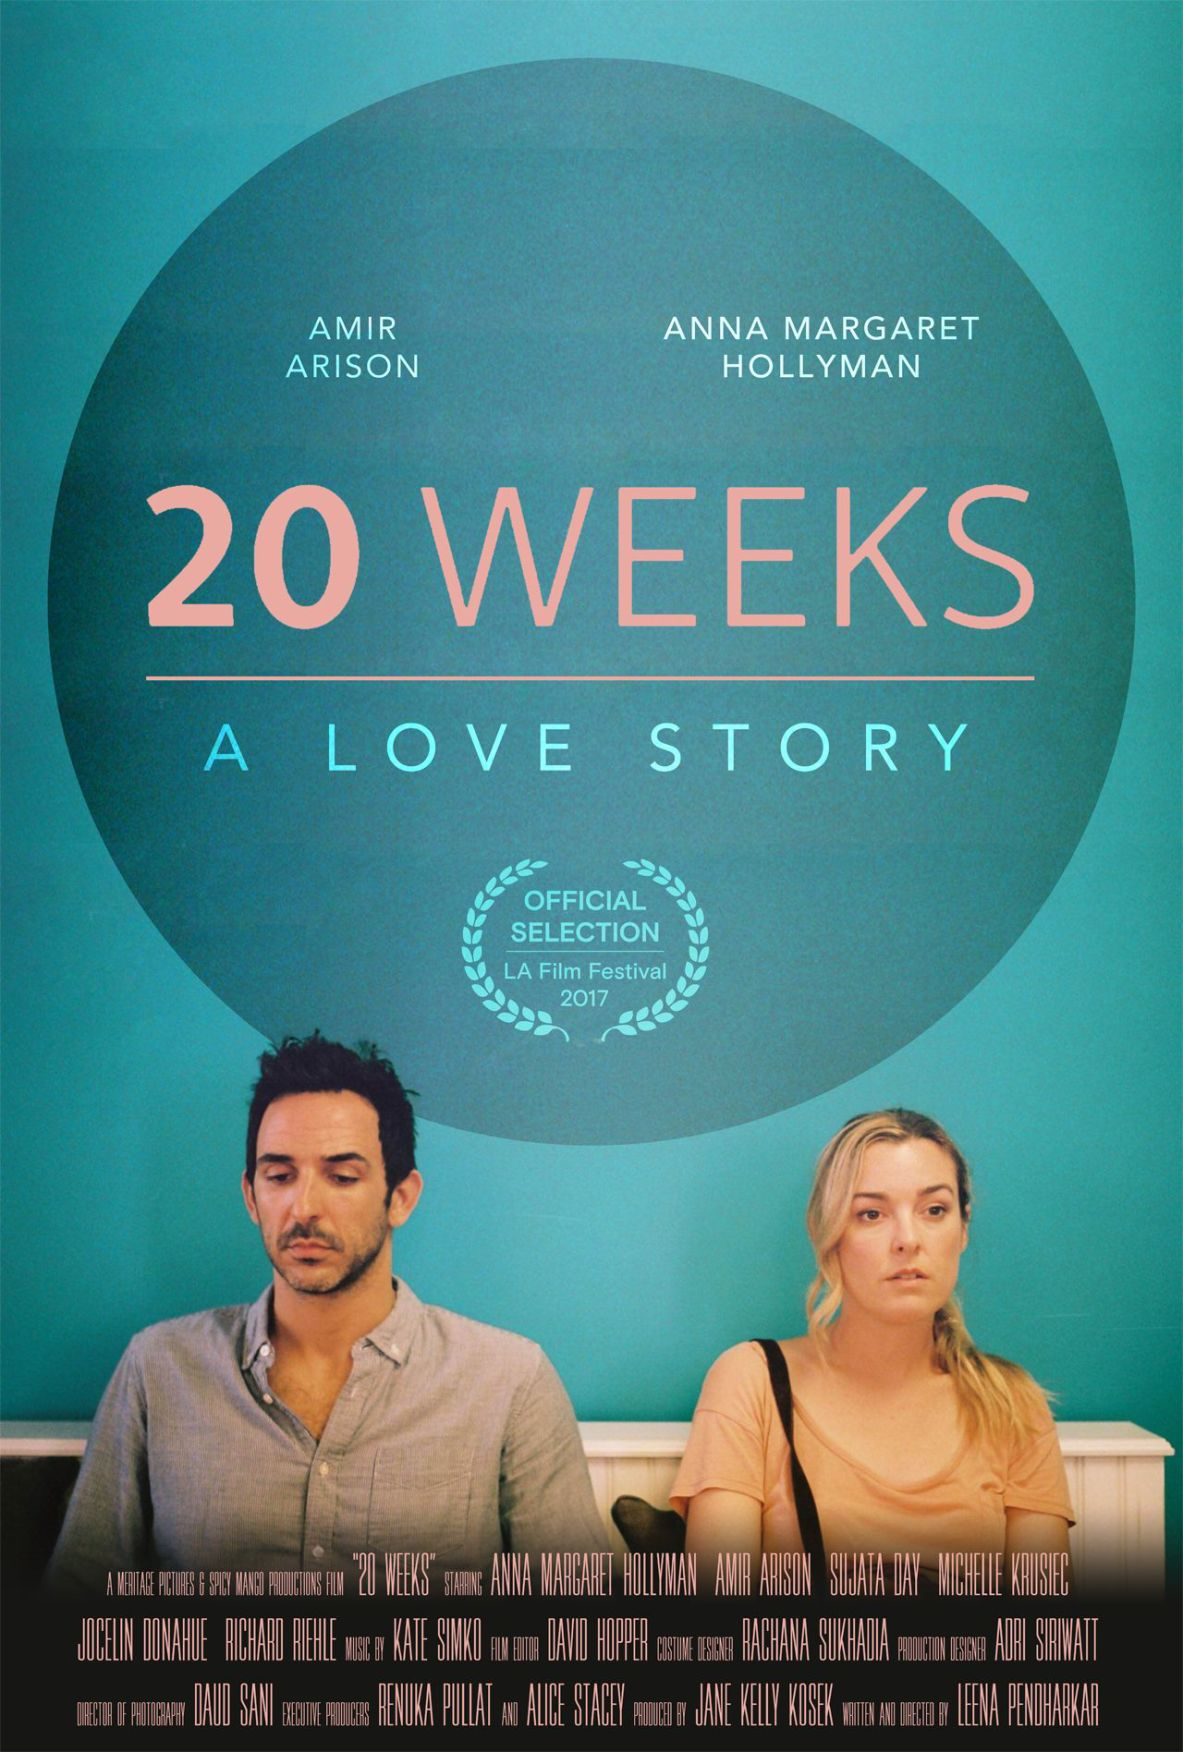 Lmu Professor Leena Pendharkar Premiers New Film 20 Weeks On